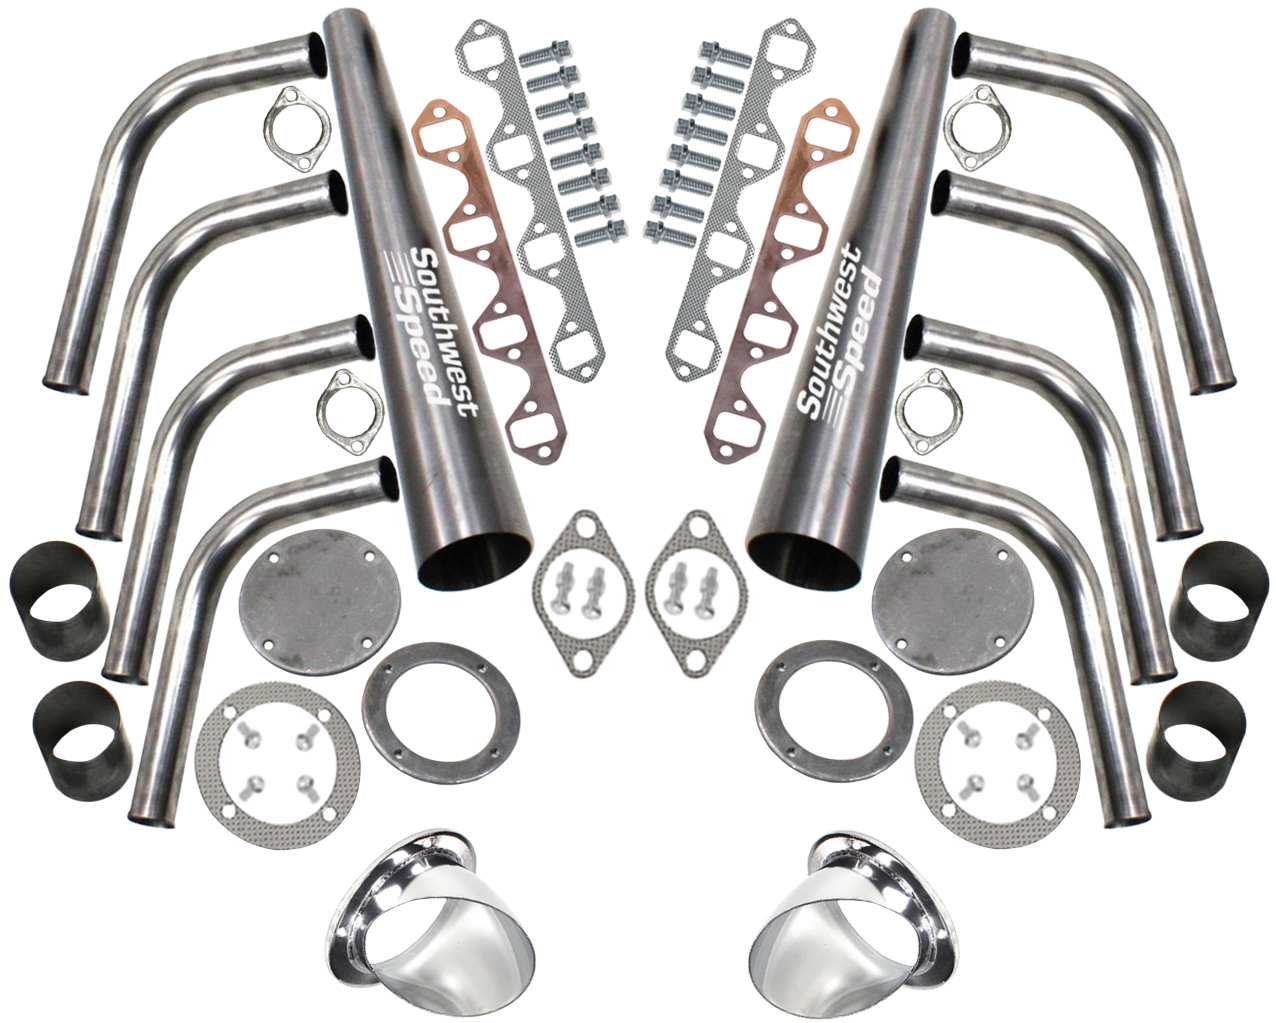 Patriot Exhaust H3811-1 Lakester 3-1//2 Coated Header Collector Turnout Kit